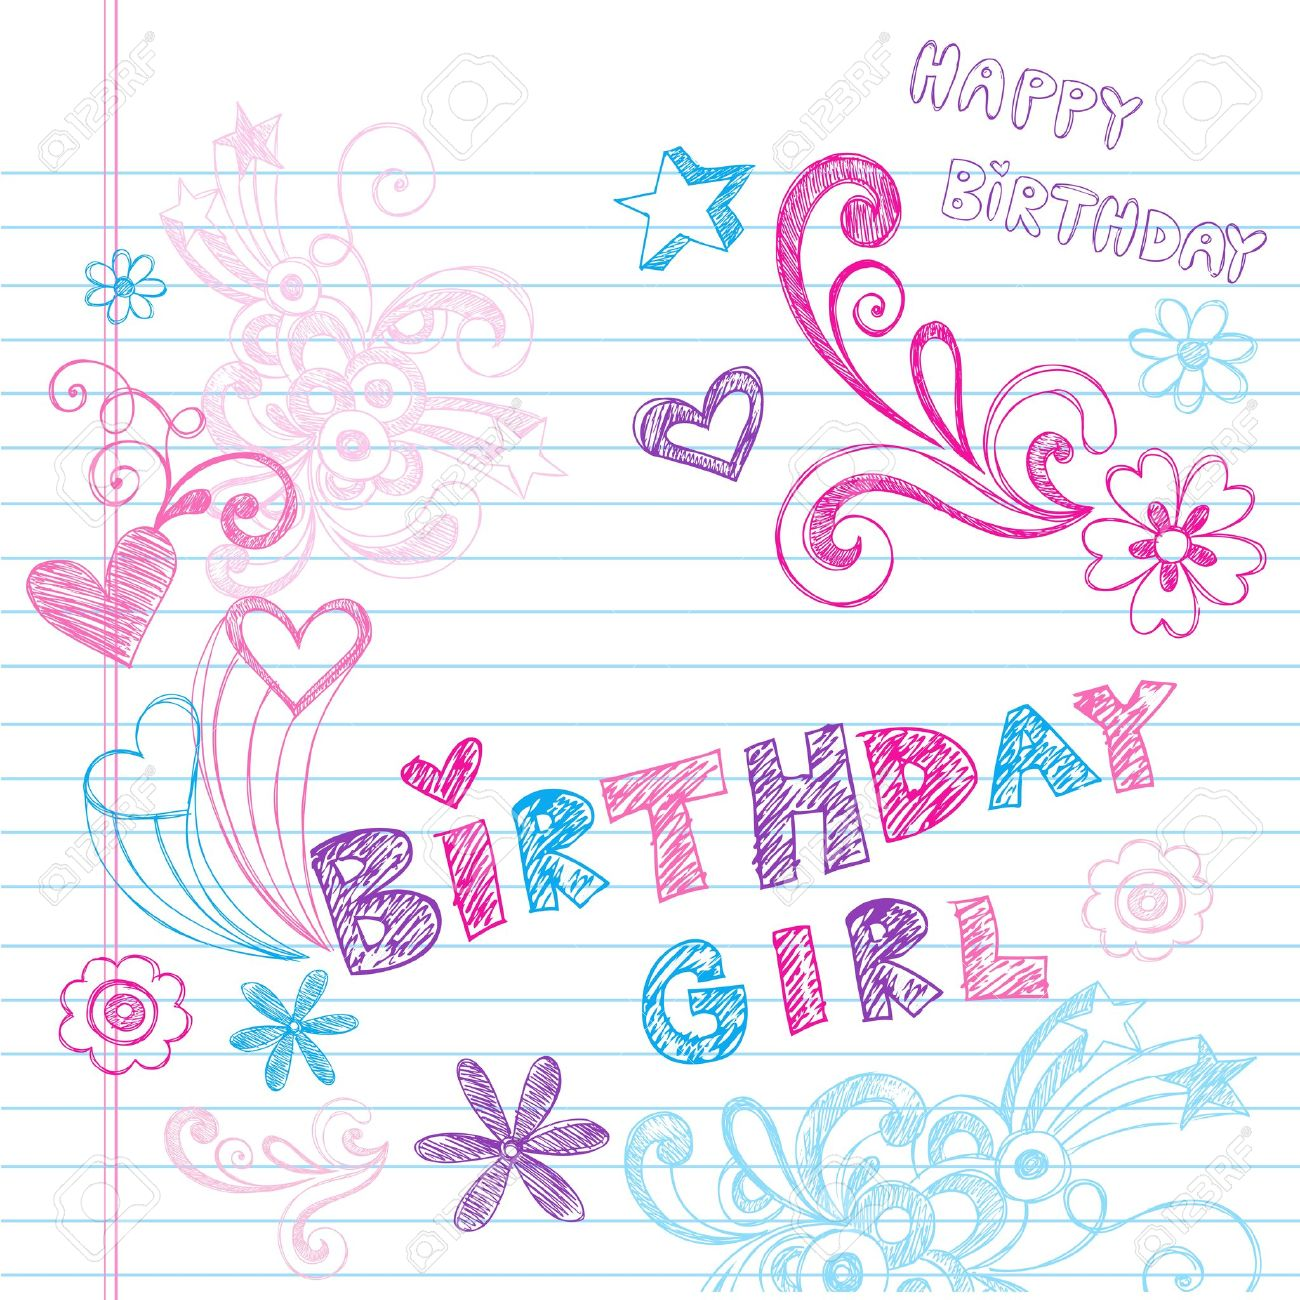 happy birthday drawing designs ; 12411865-happy-birthday-party-sketchy-back-to-school-hand-drawn-notebook-doodles-vector-illustration-design-e